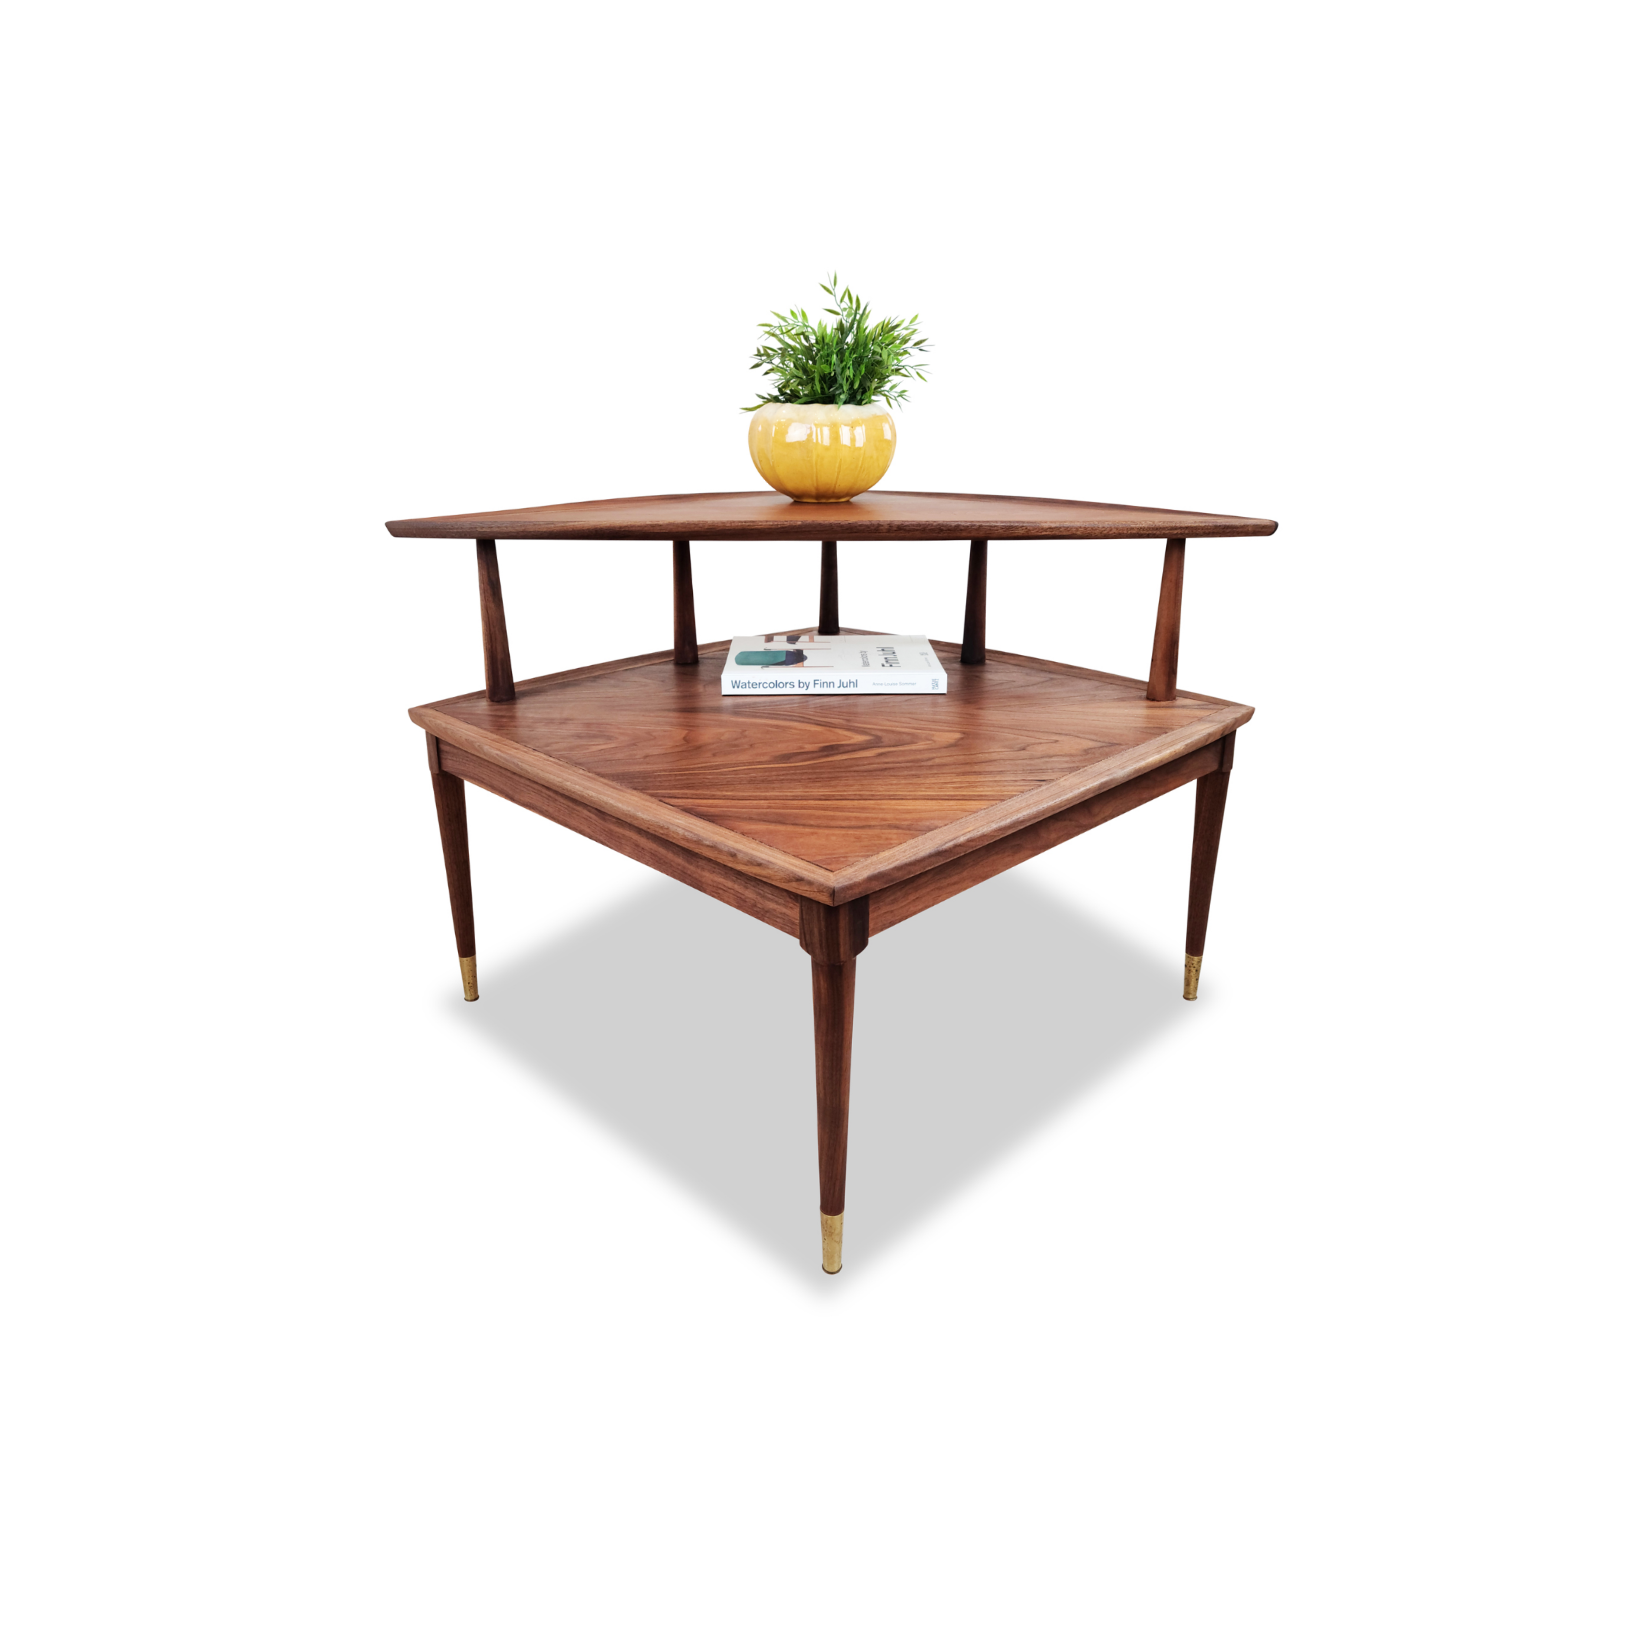 Walnut Corner Table by Deilcraft